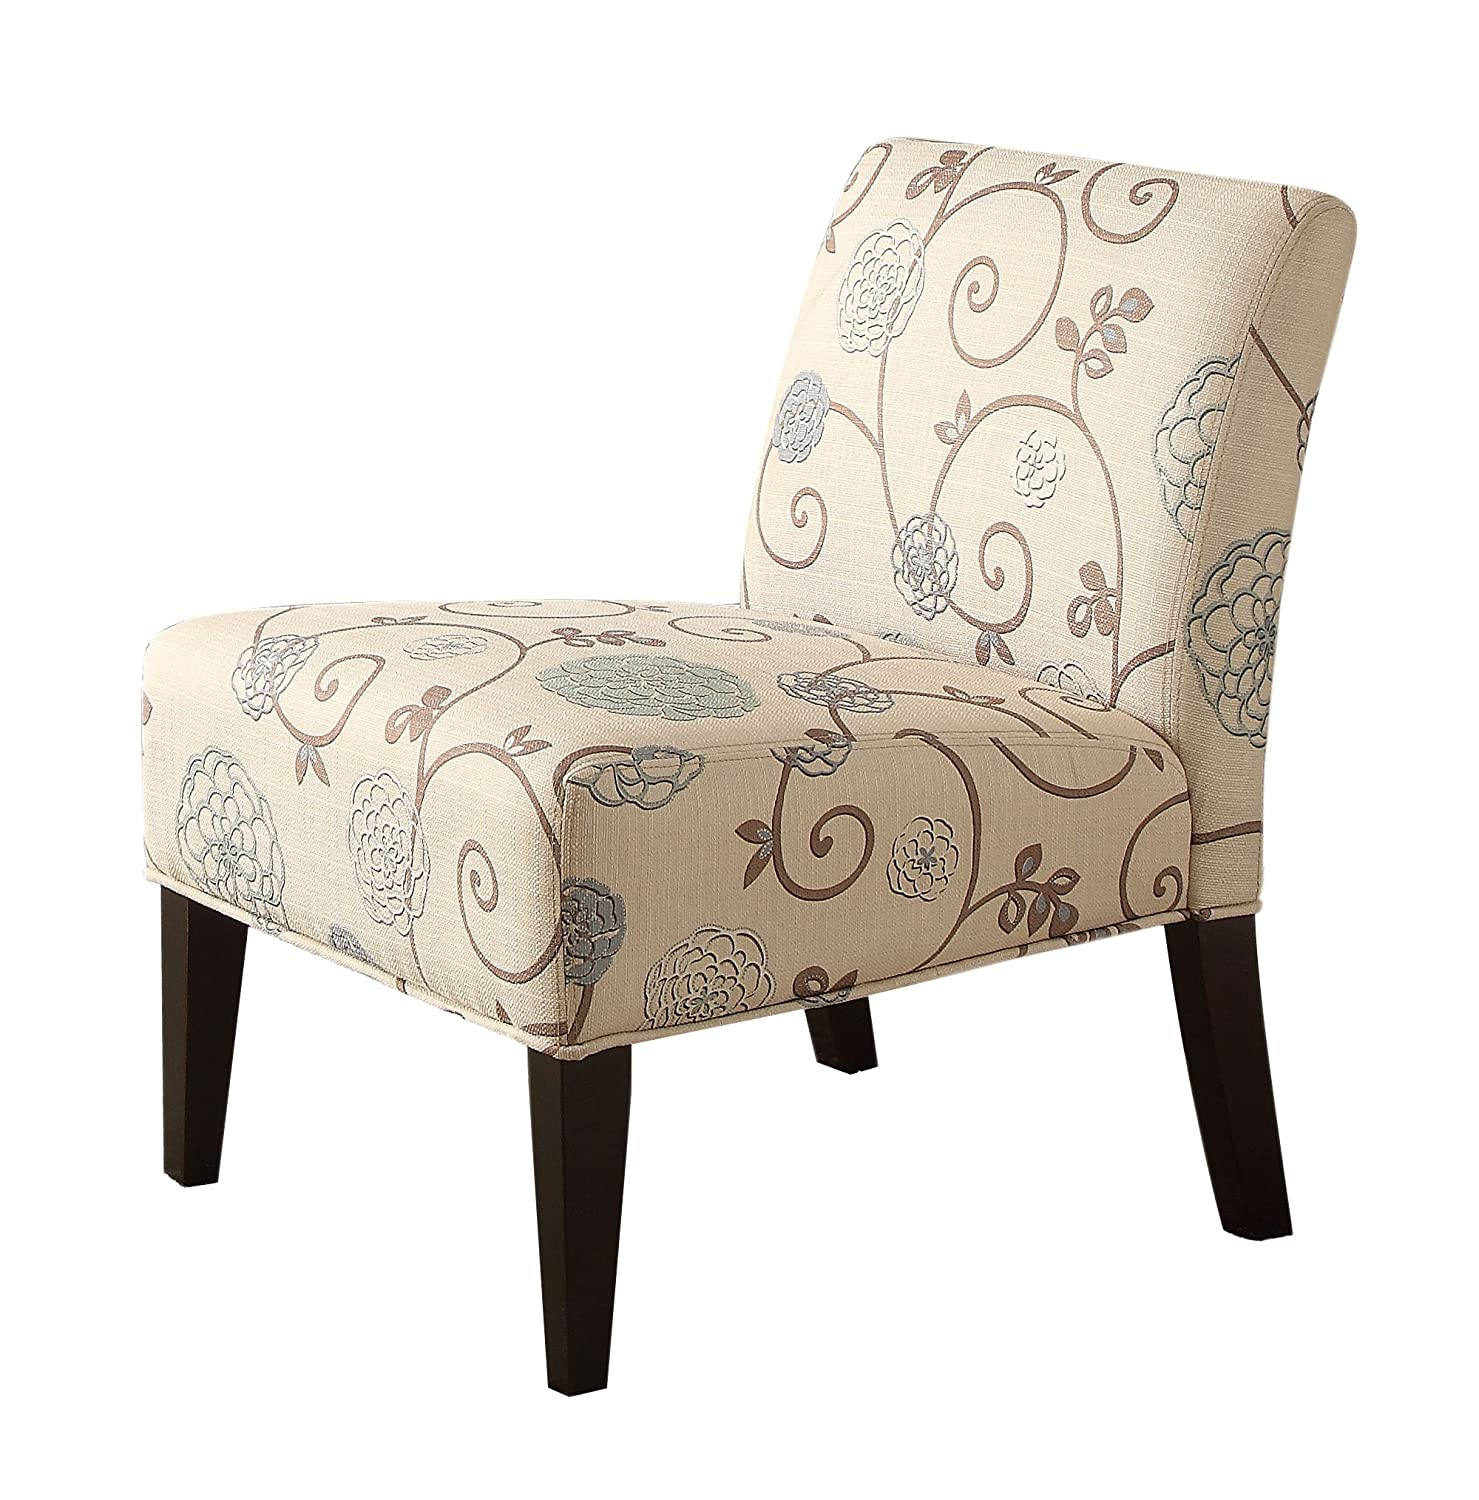 Homelegance 468F25S Lifestyle Armless Lounge Chair - Floral Fabric